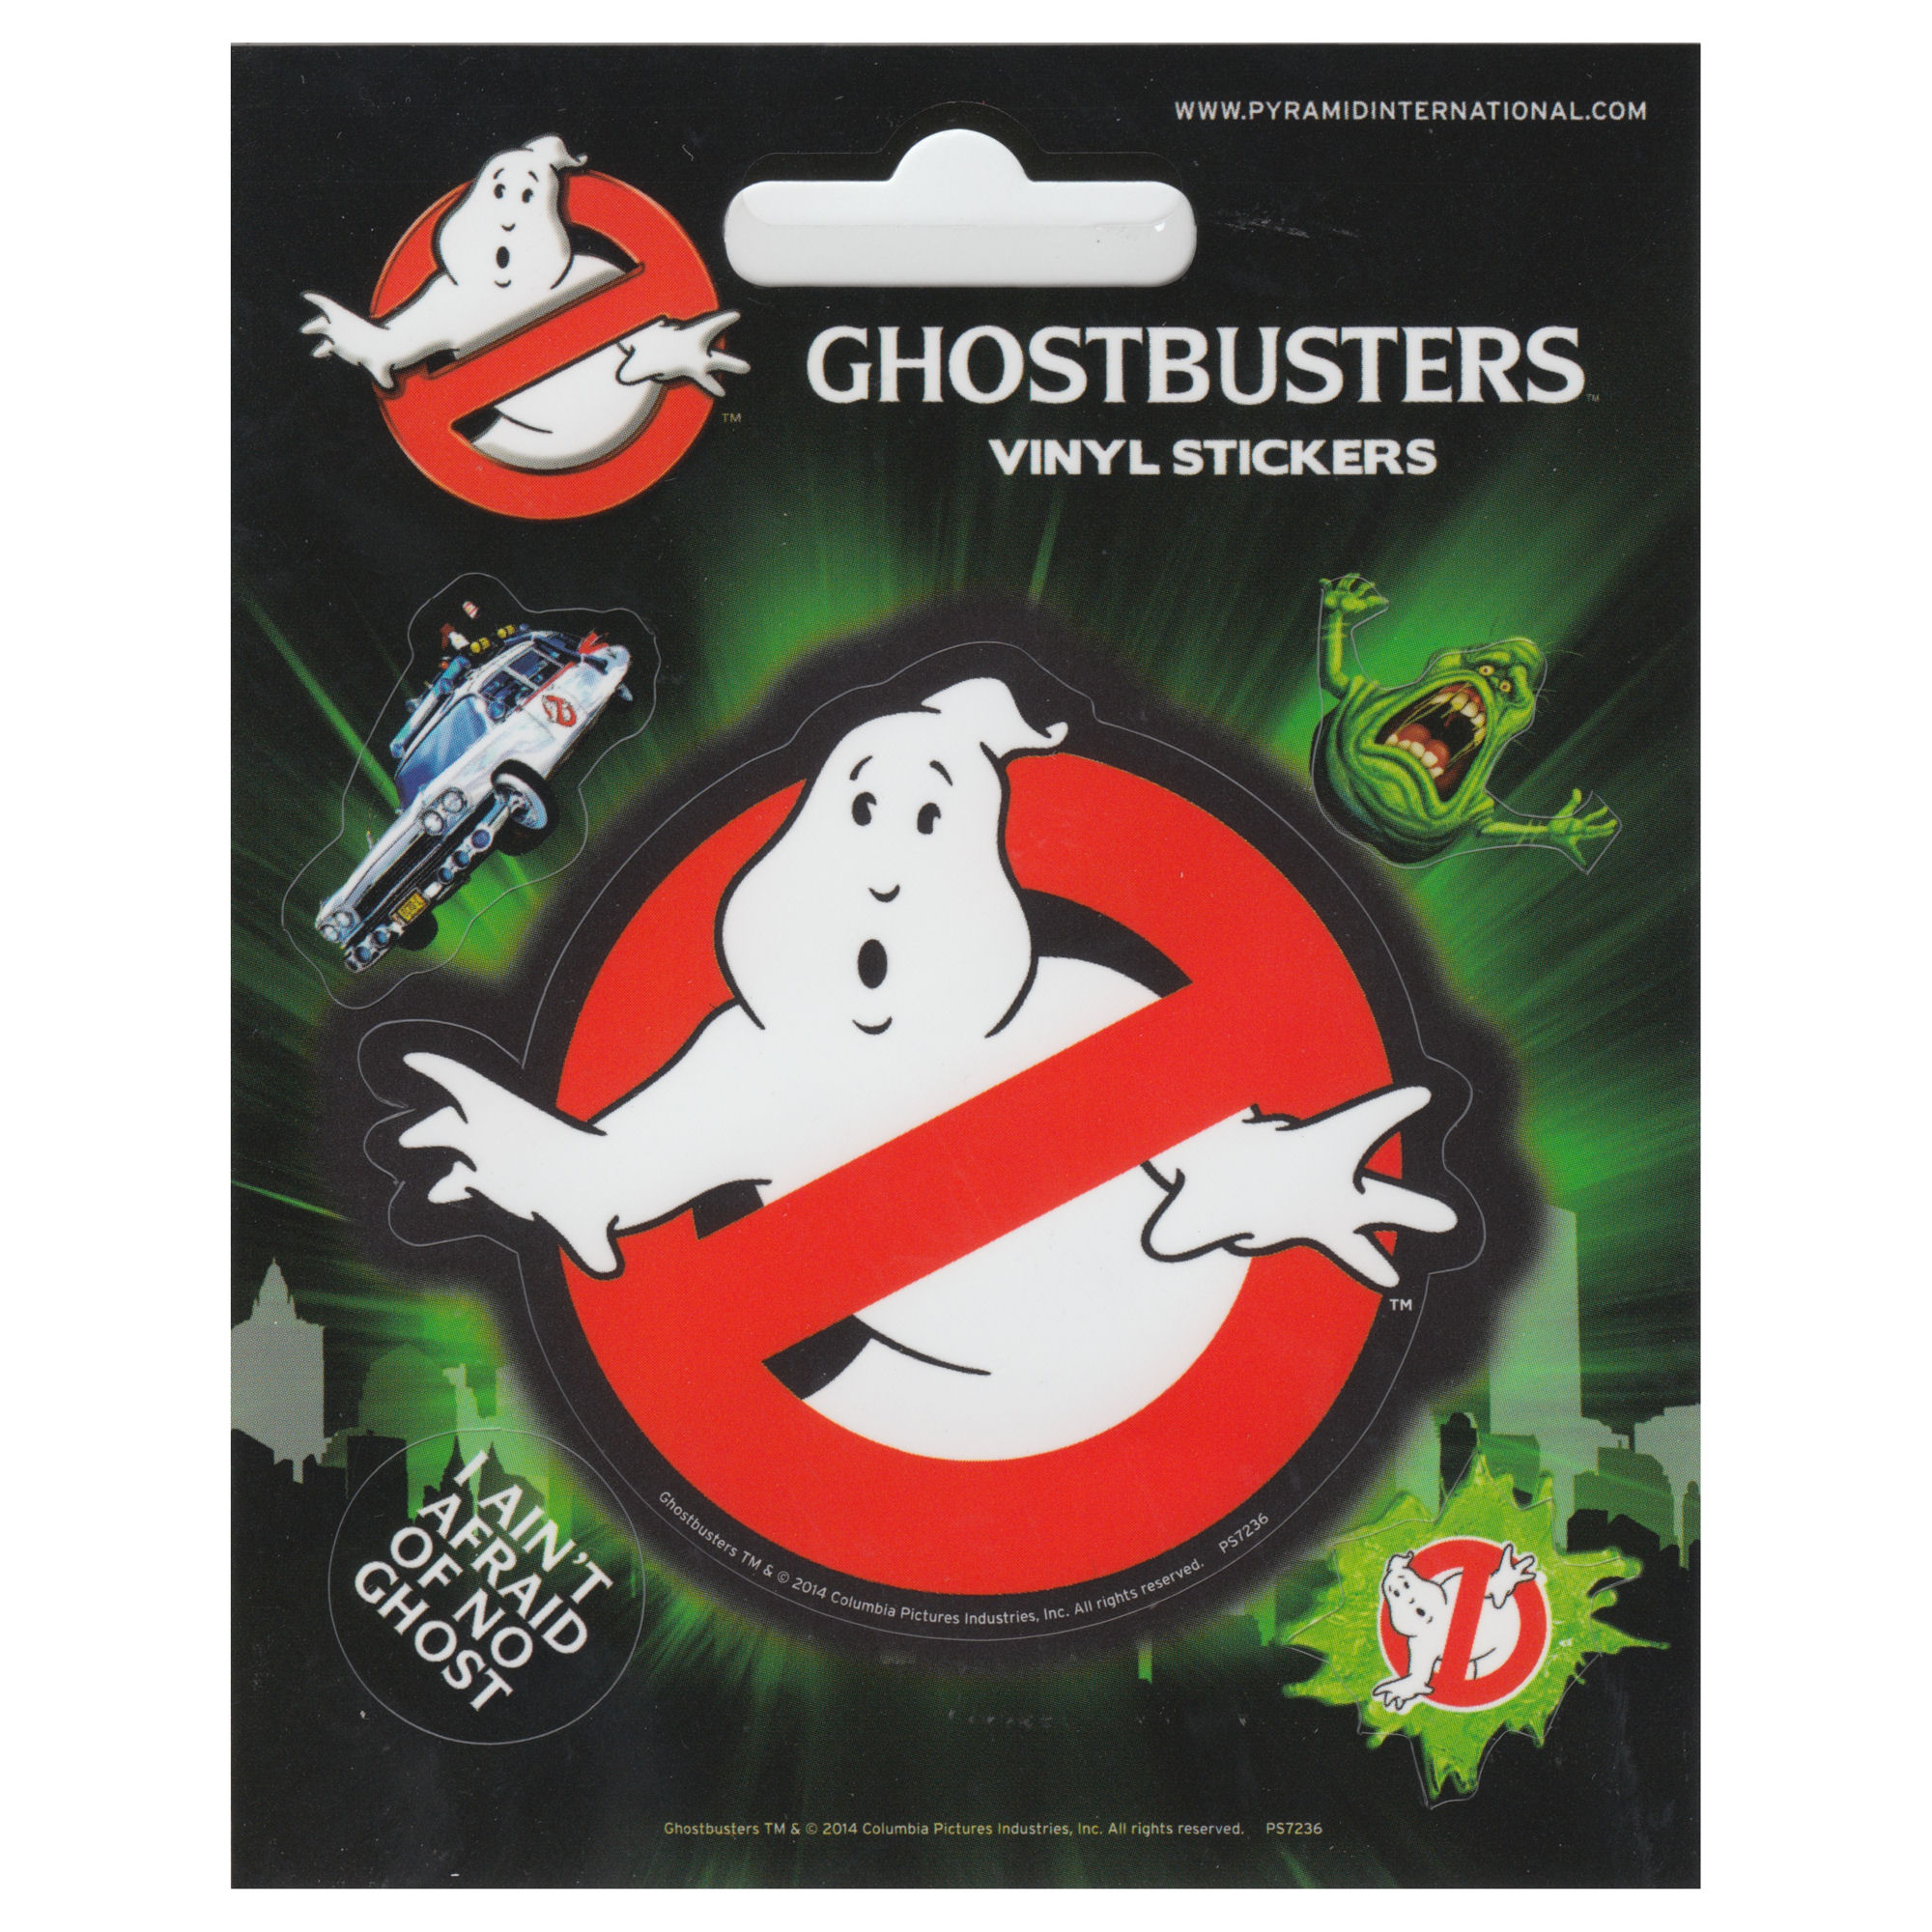 Ghostbusters Set of 5 Vinyl Stickers